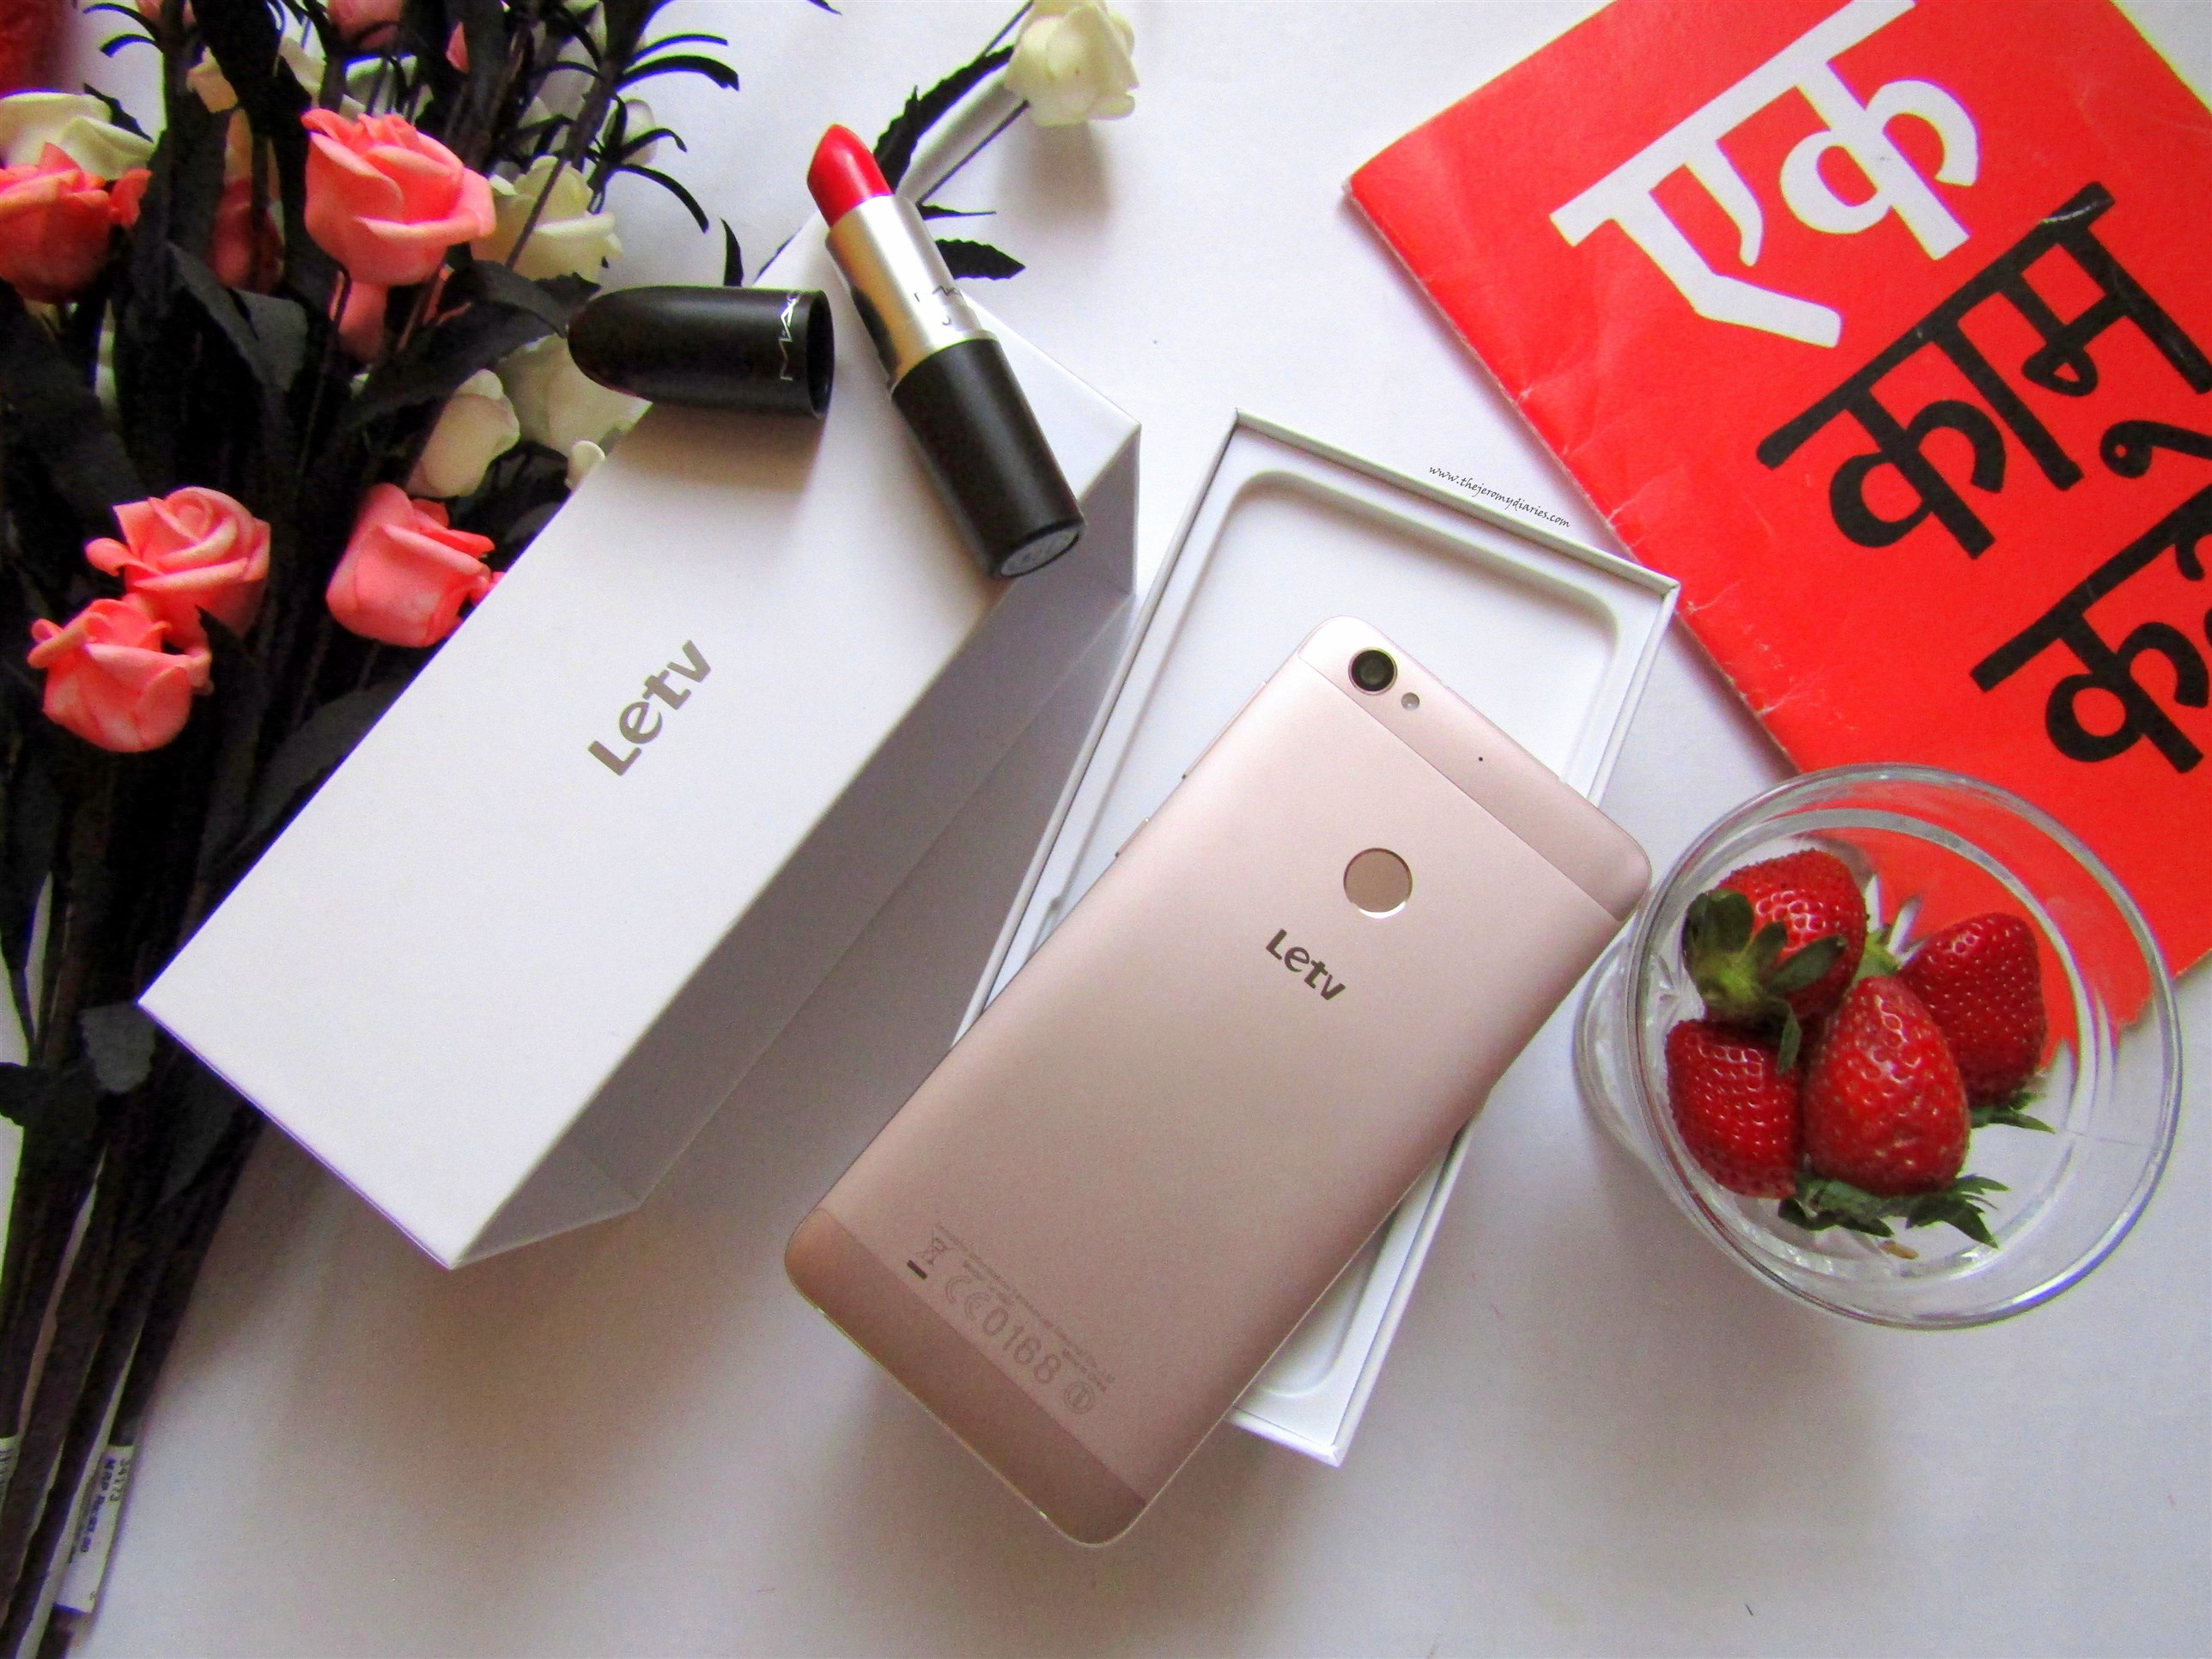 LeEco Le 1s rose gold back panel (2576 x 1932)